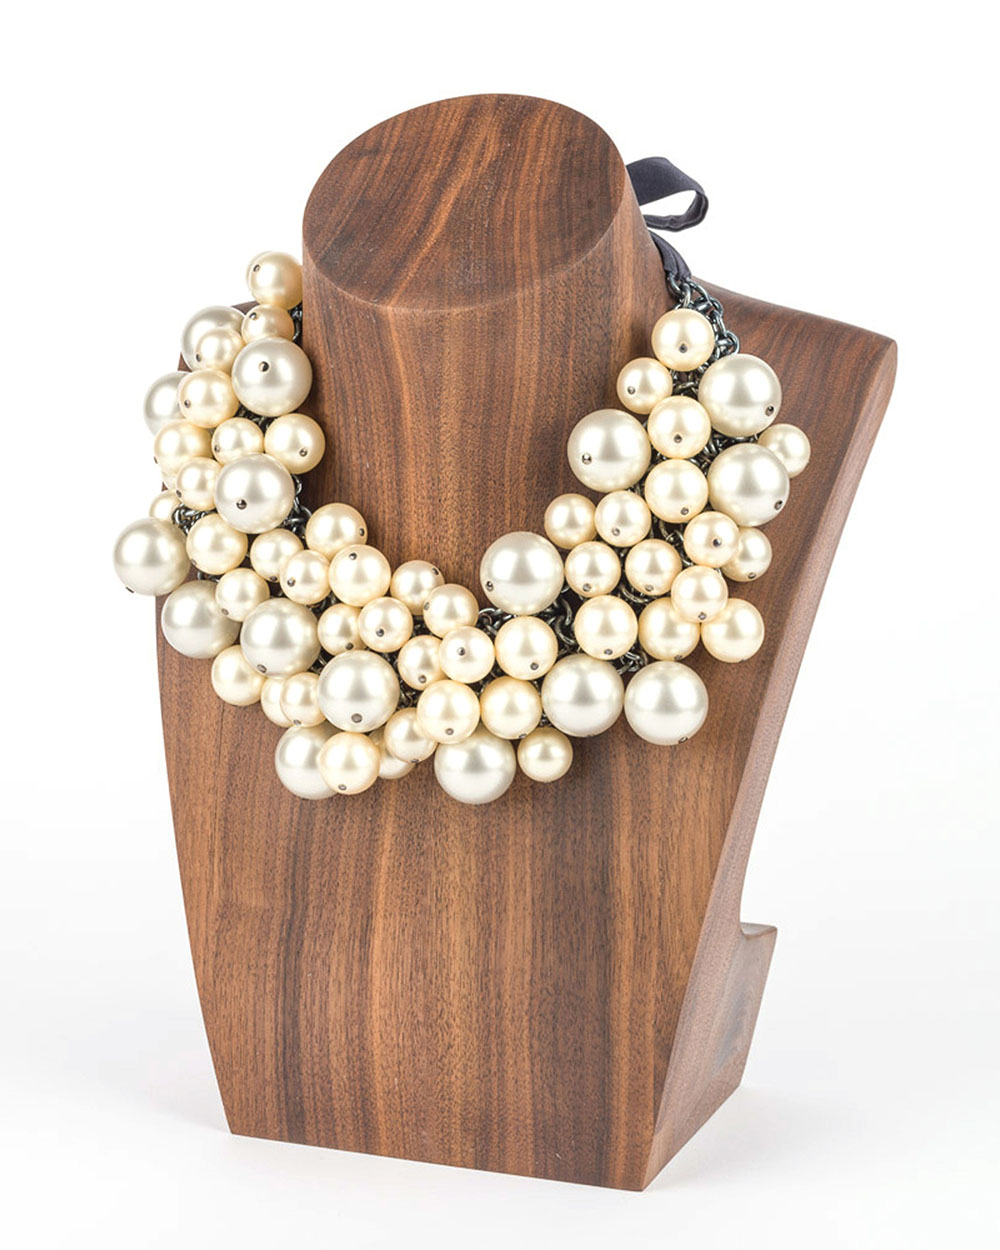 stacklab-design-custom-jewelry-display-bust-natural-materials.jpg